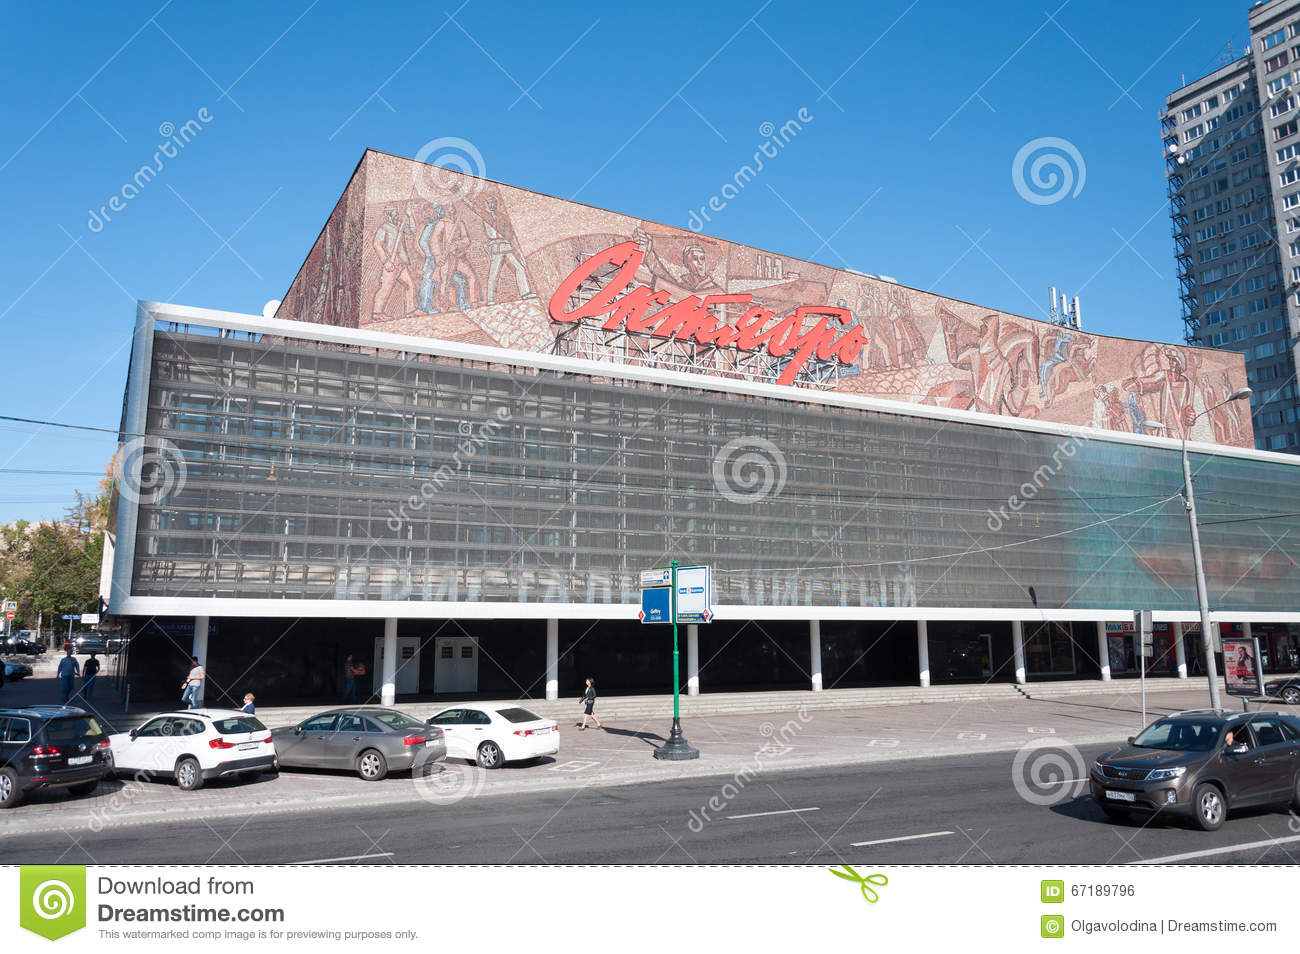 Moscow, Russia - 09.21.2015. October Cinema on Novy Arbat - sample of Soviet architecture.